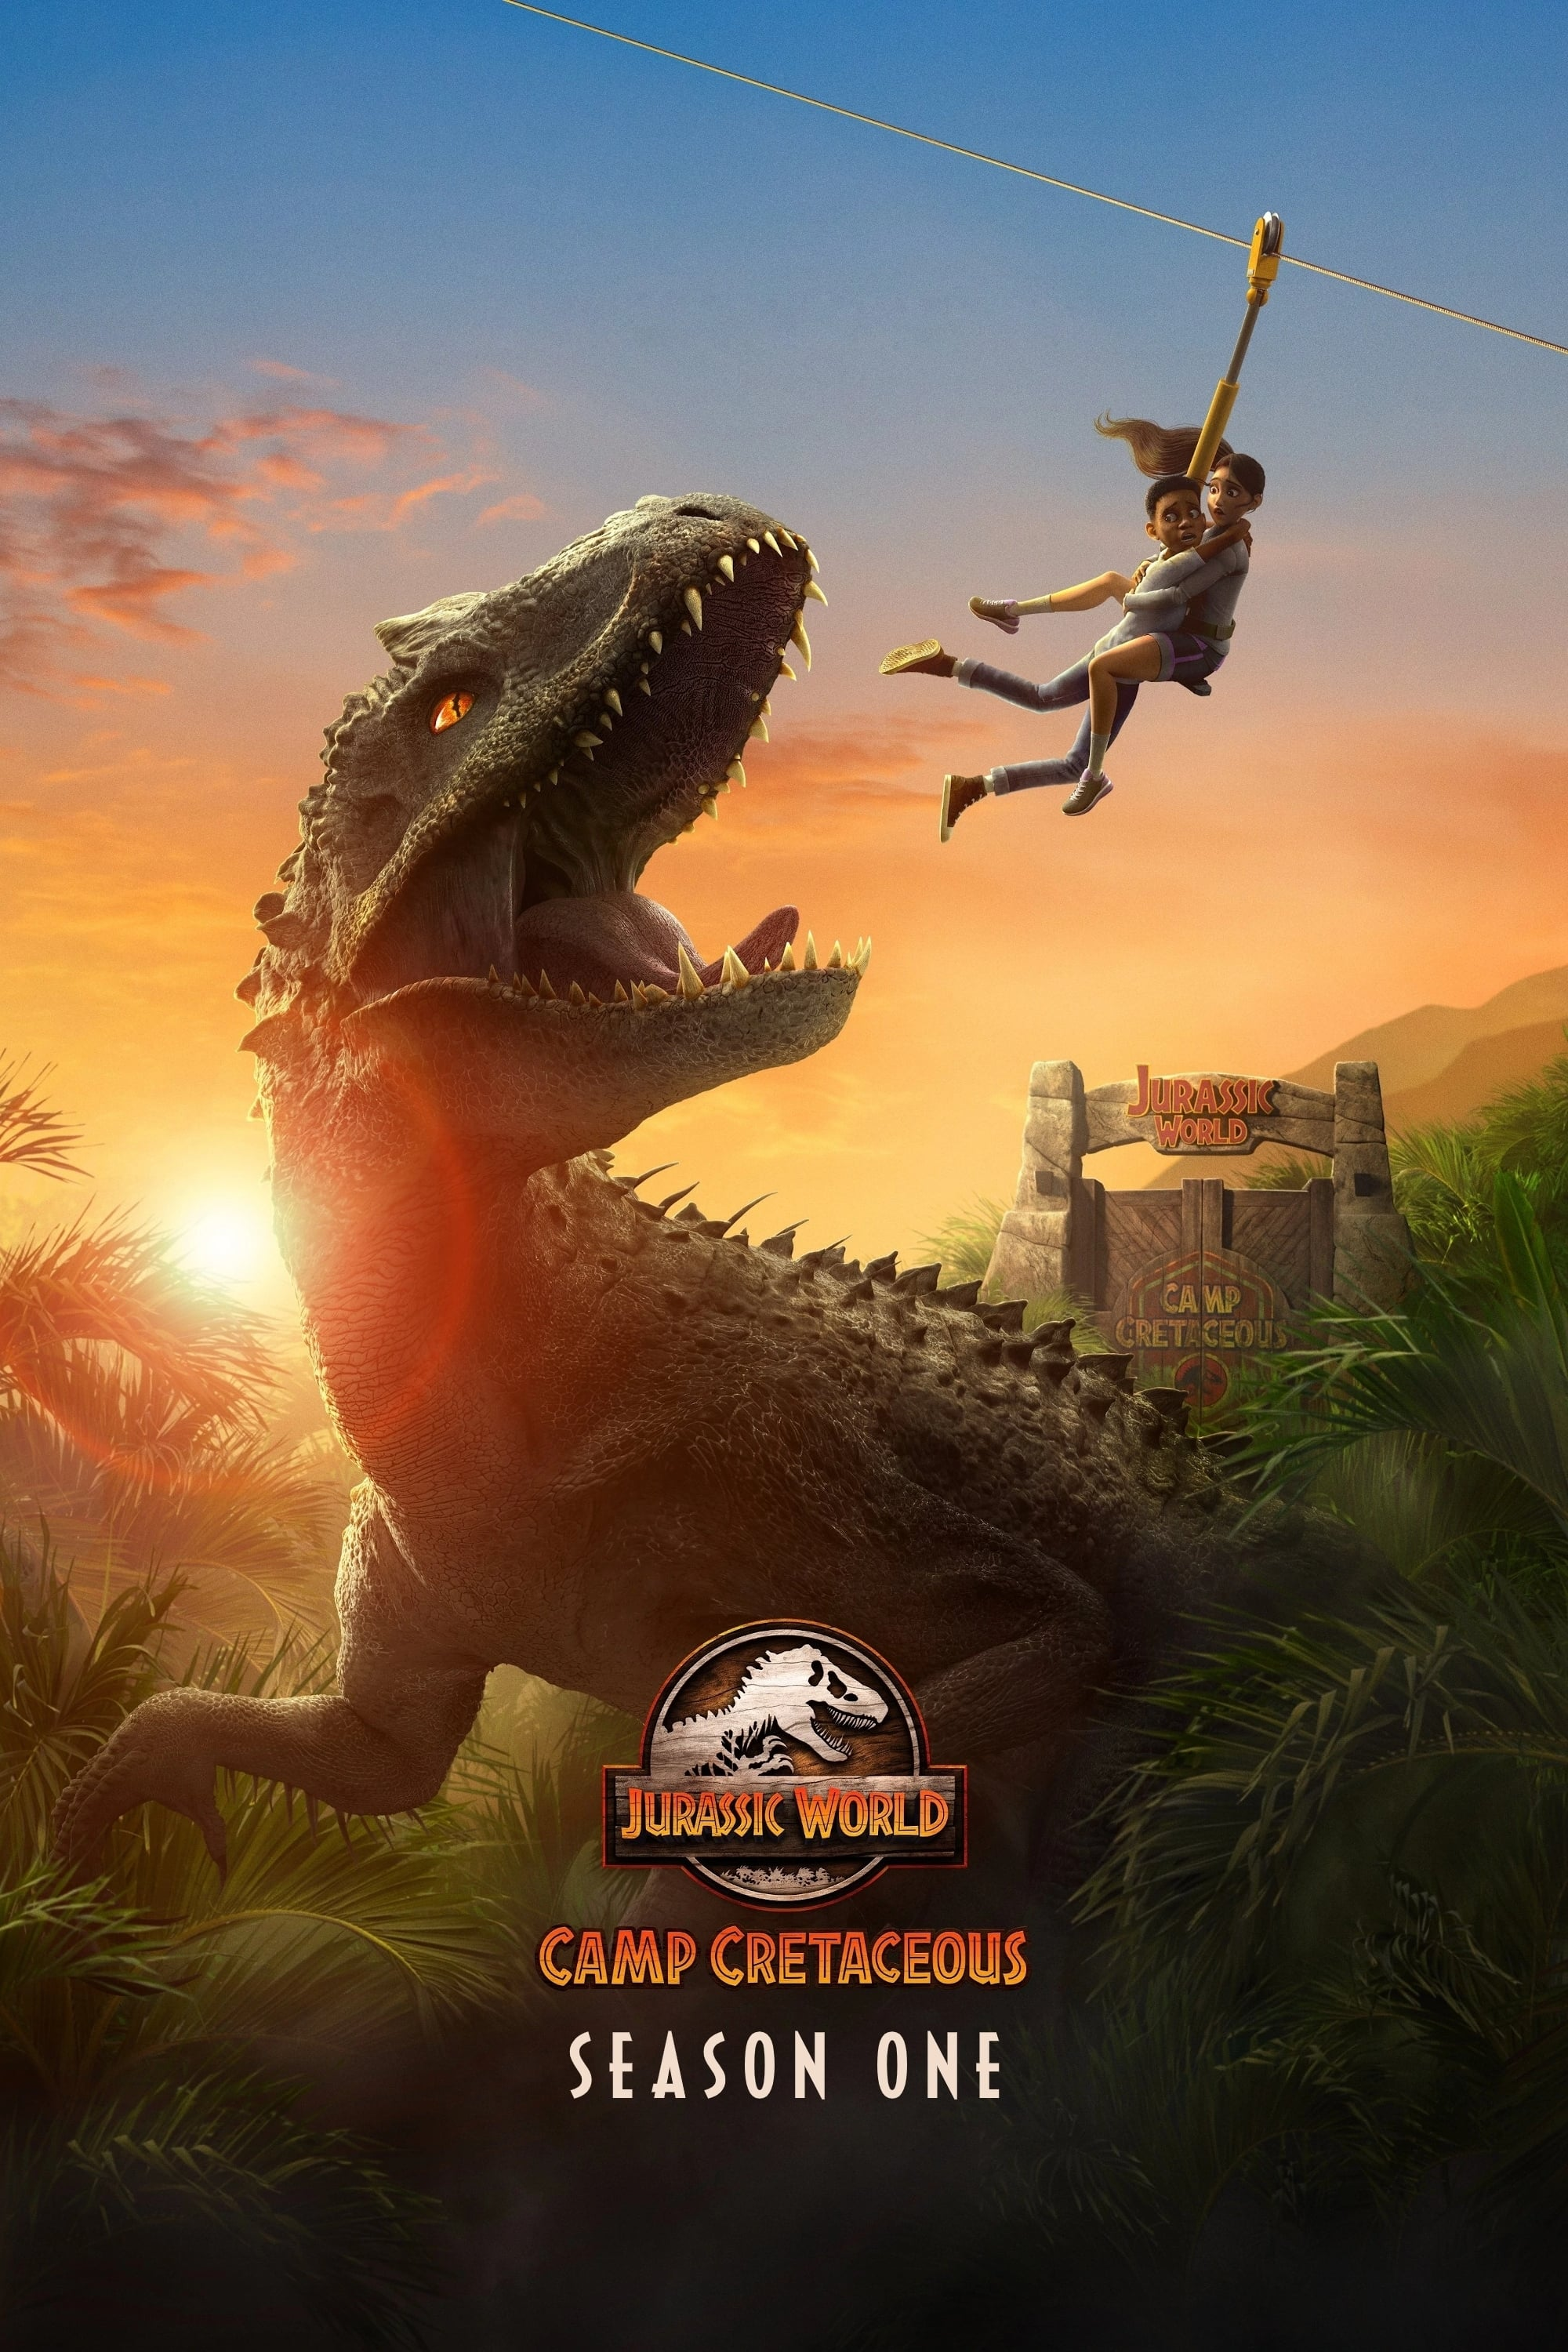 Jurassic World: Camp Cretaceous S1 (2020) Subtitle Indonesia